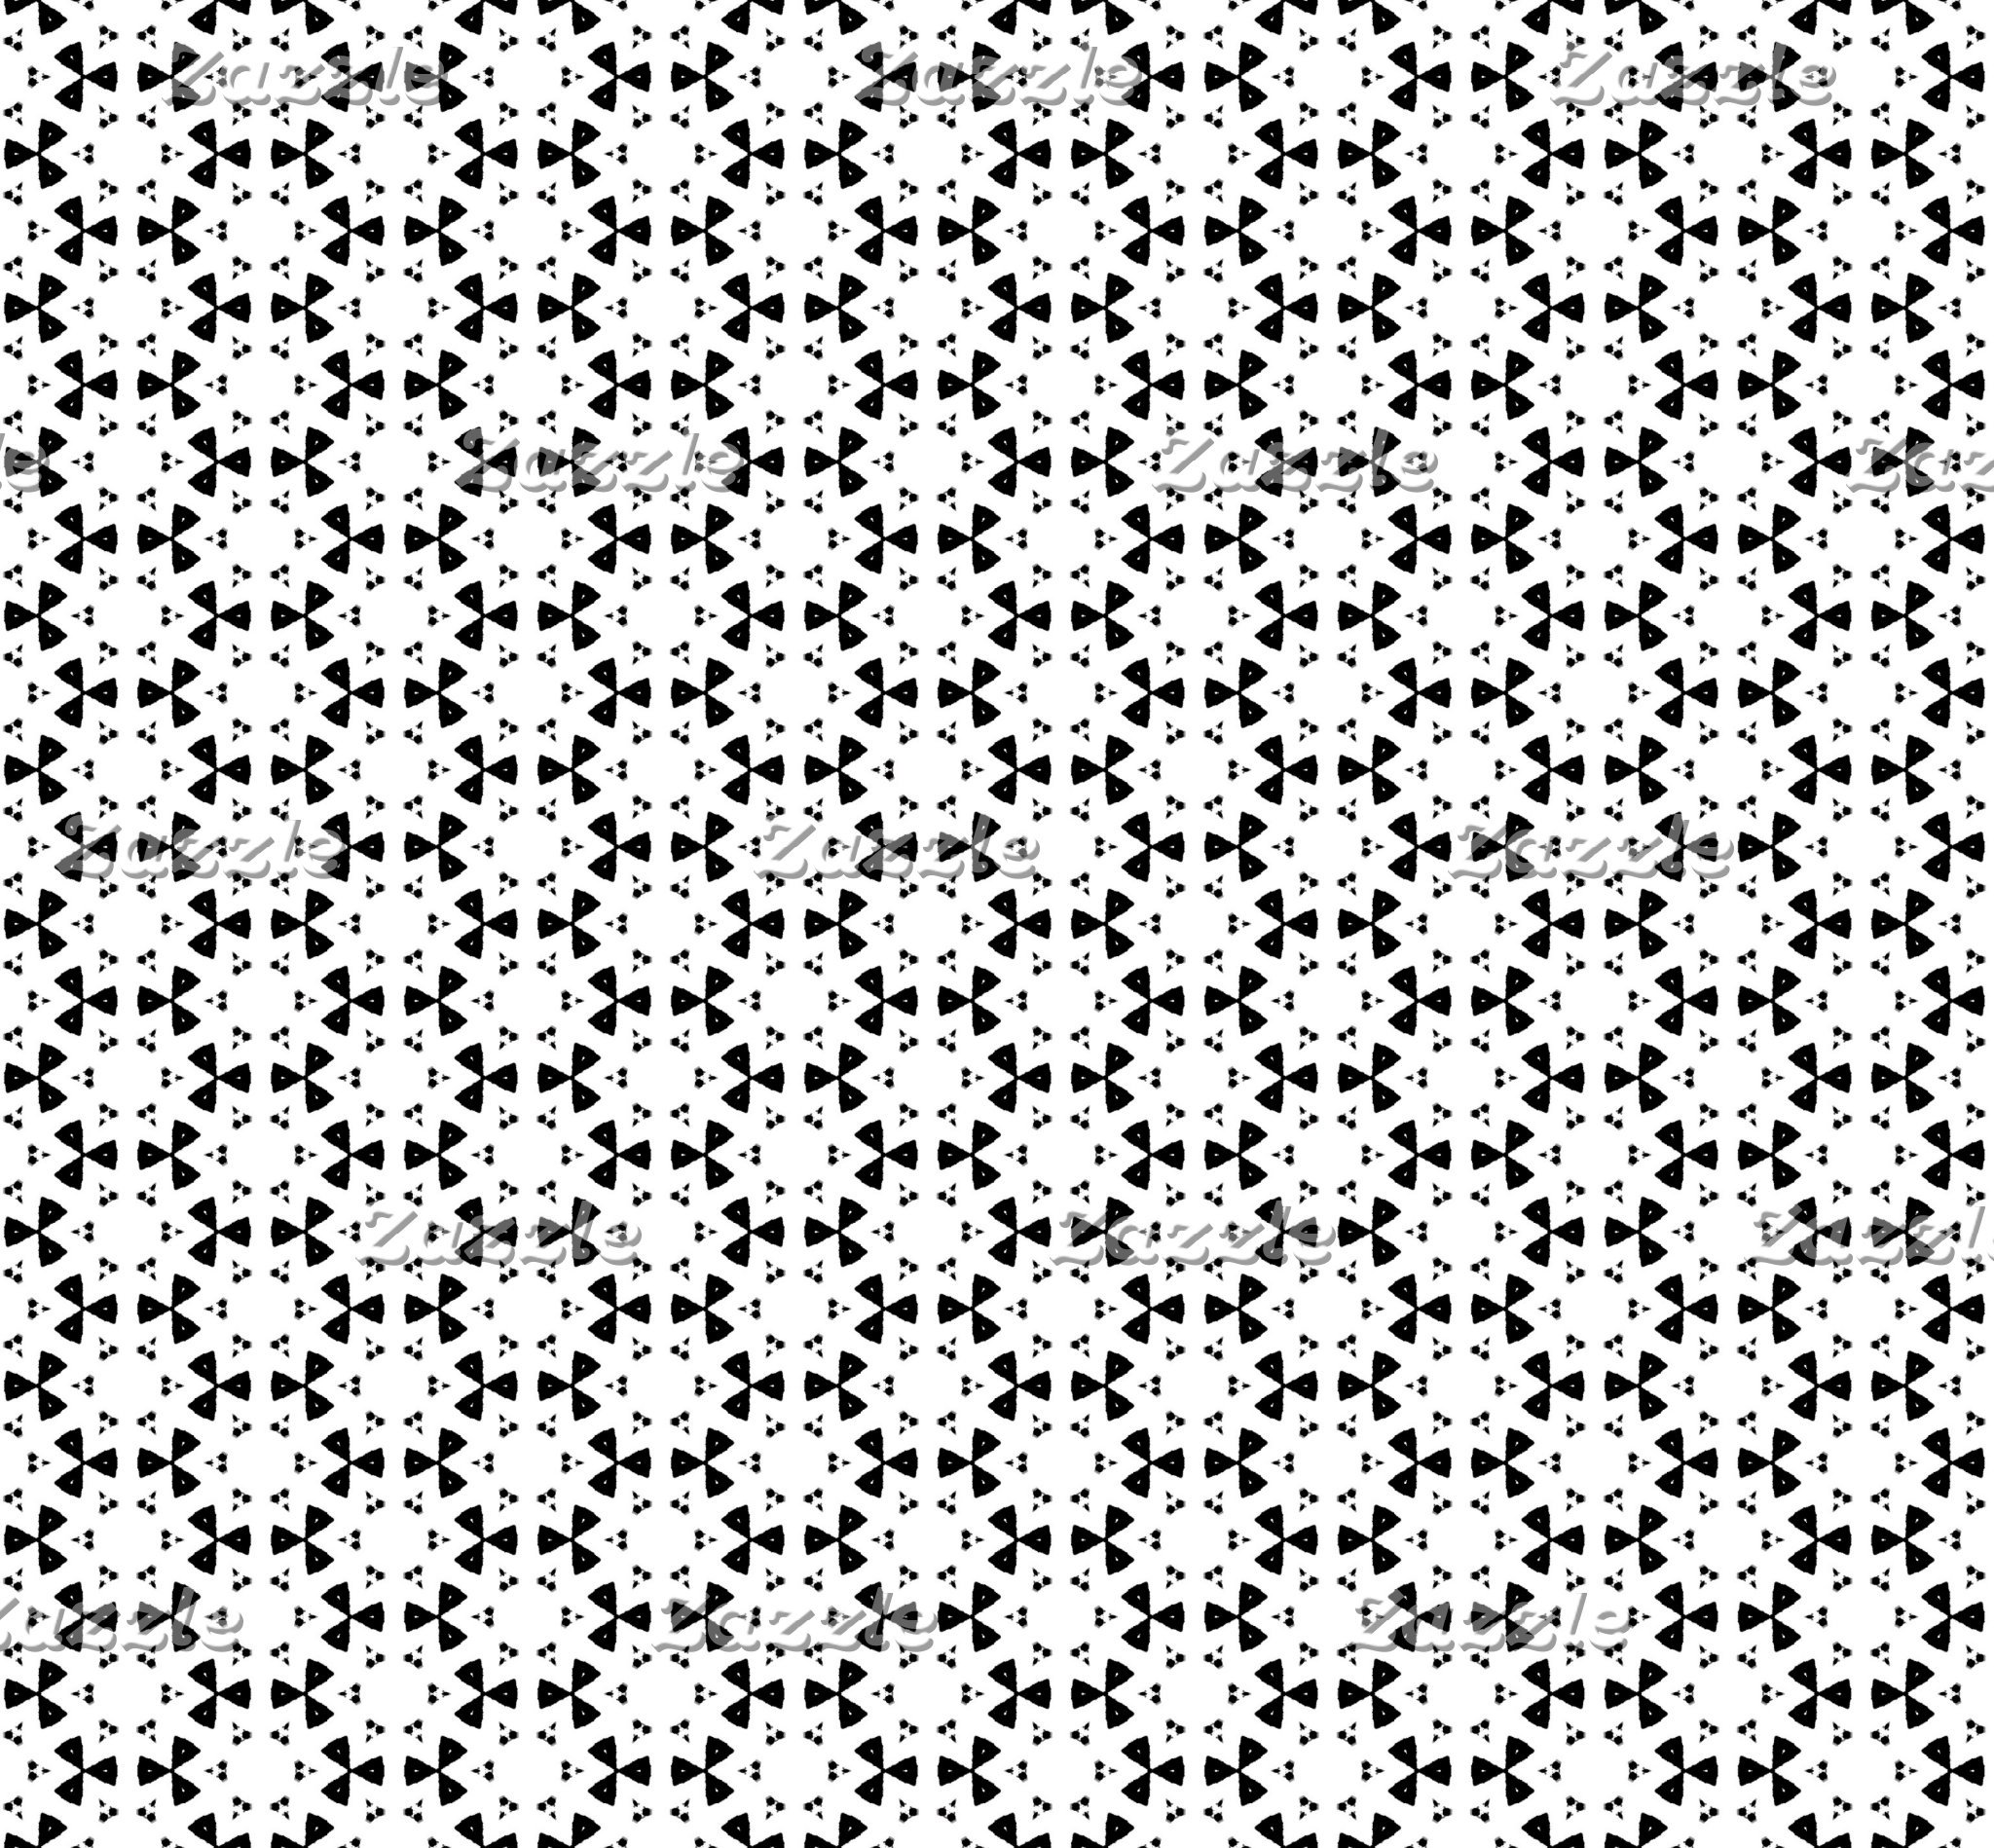 Black & White Patterns | Hexagons VII